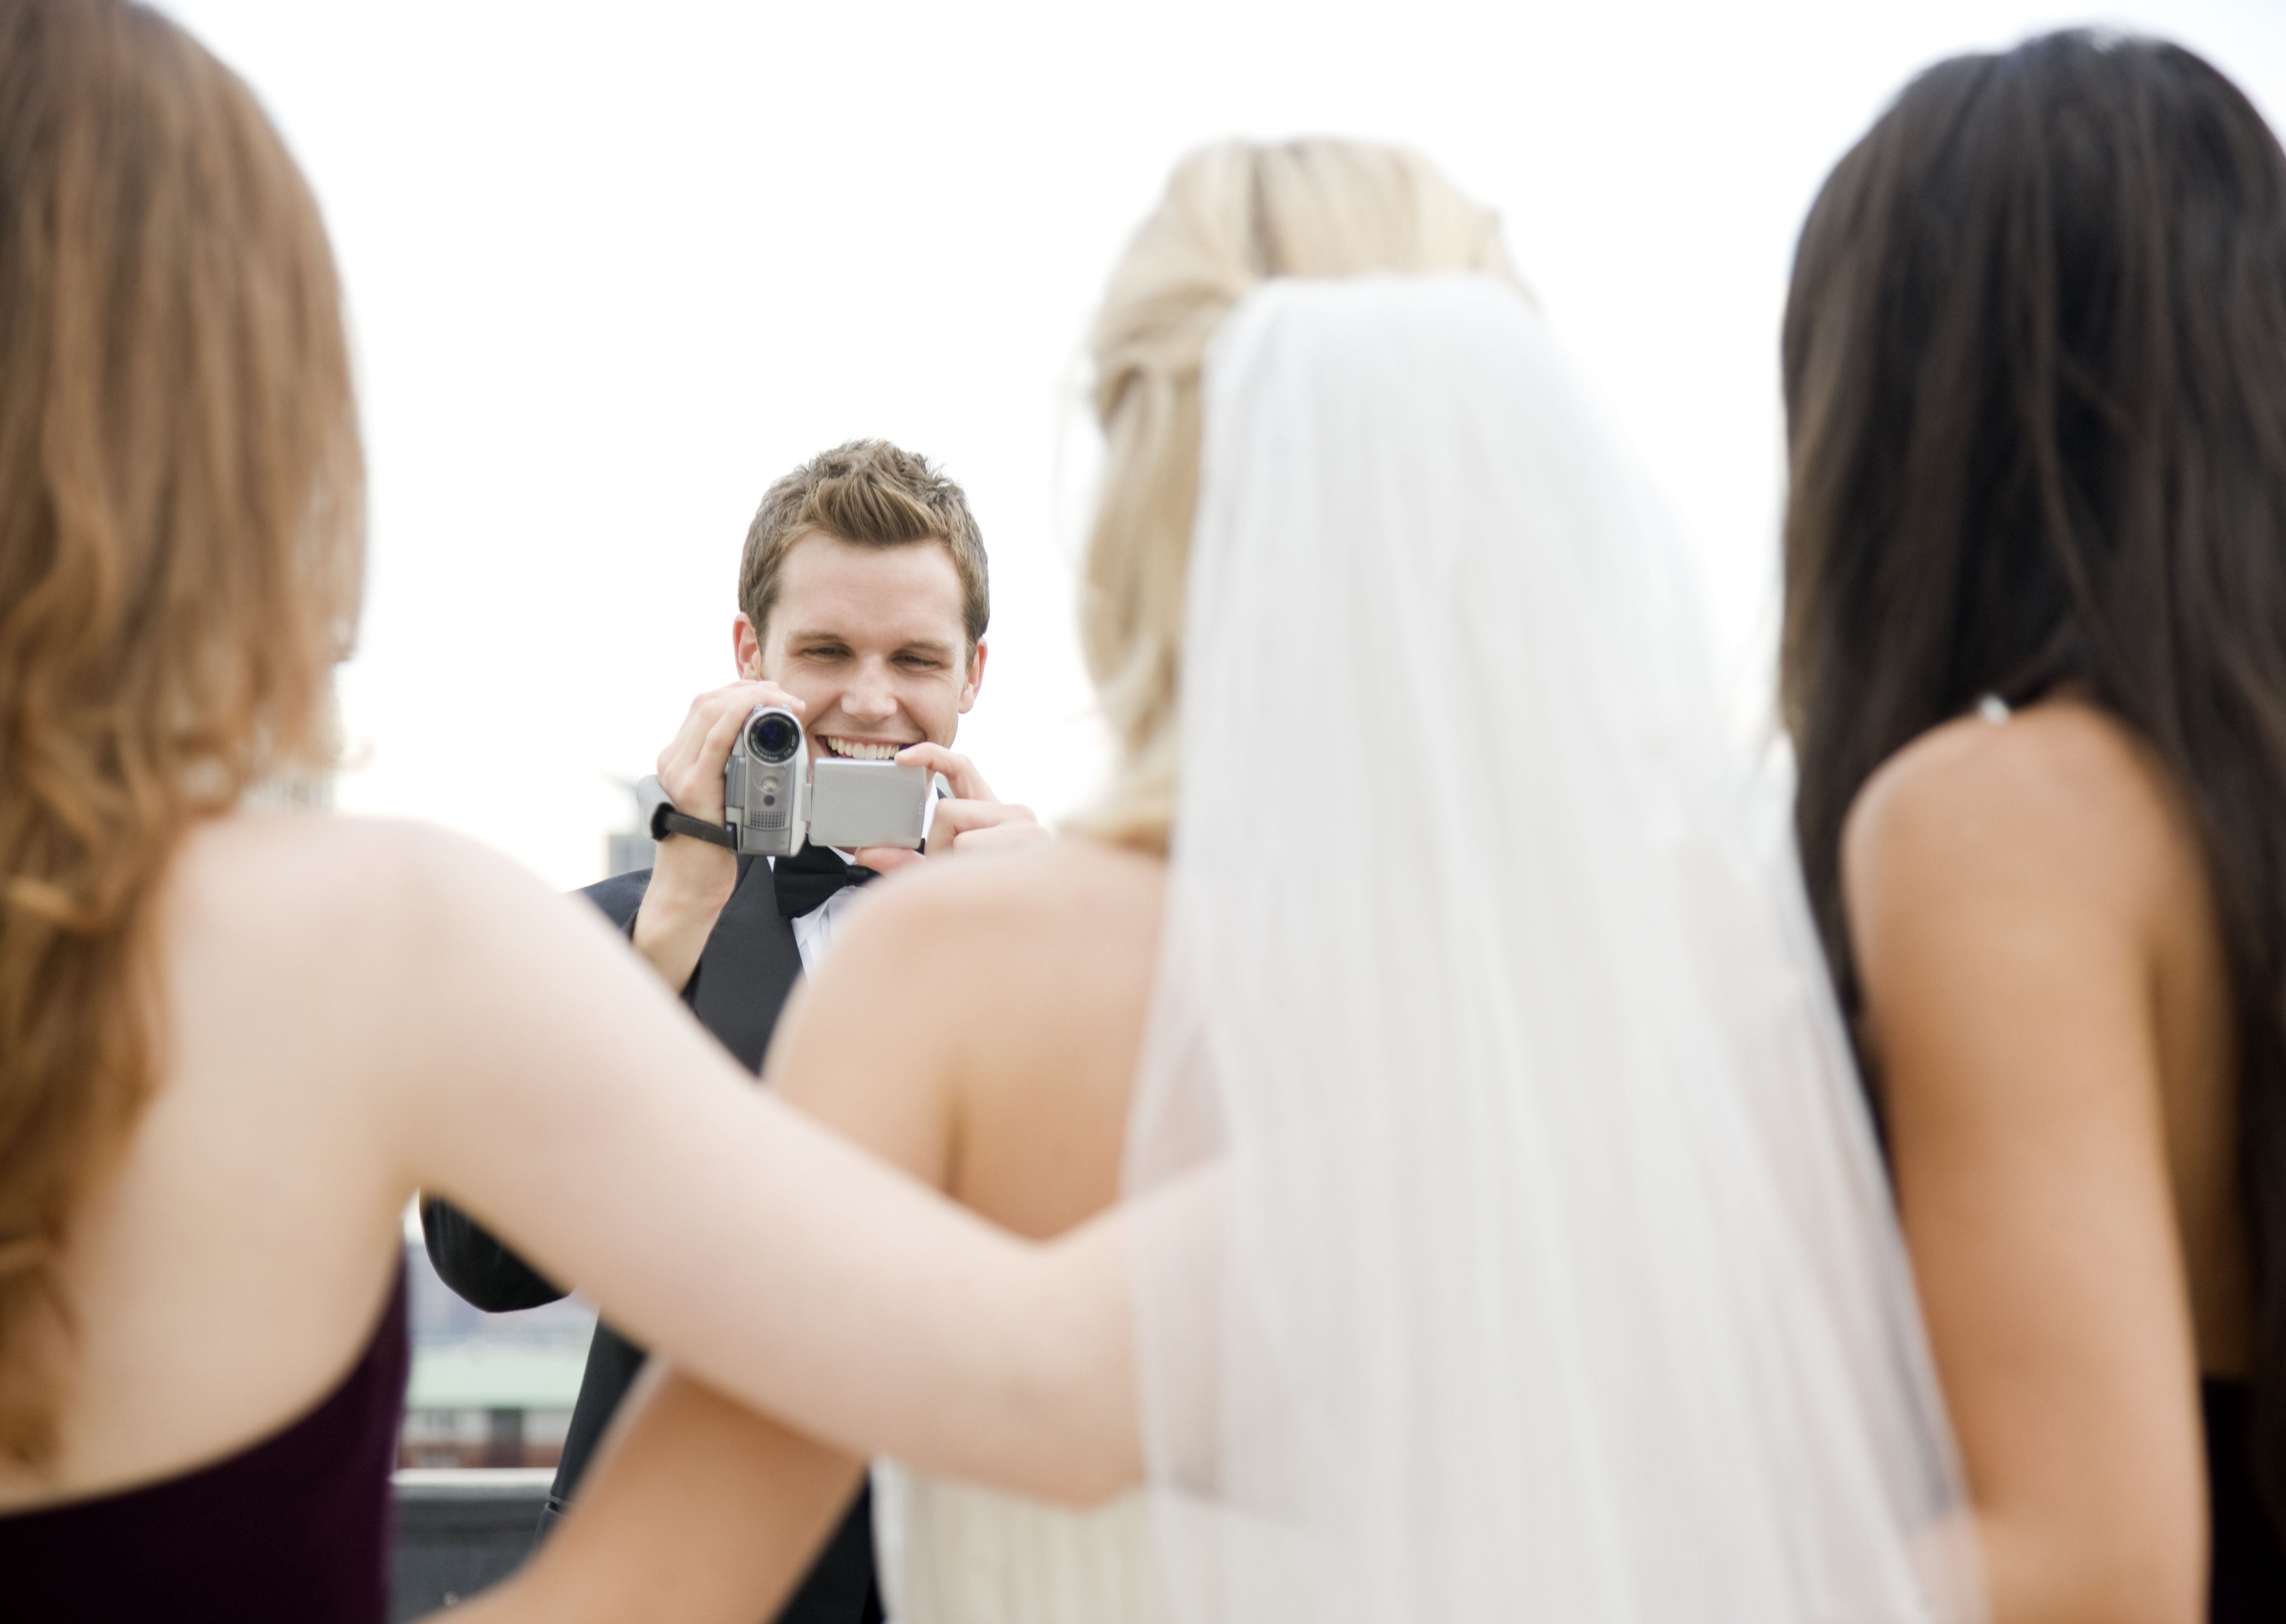 Wedding Videography Checklist of Important Shots